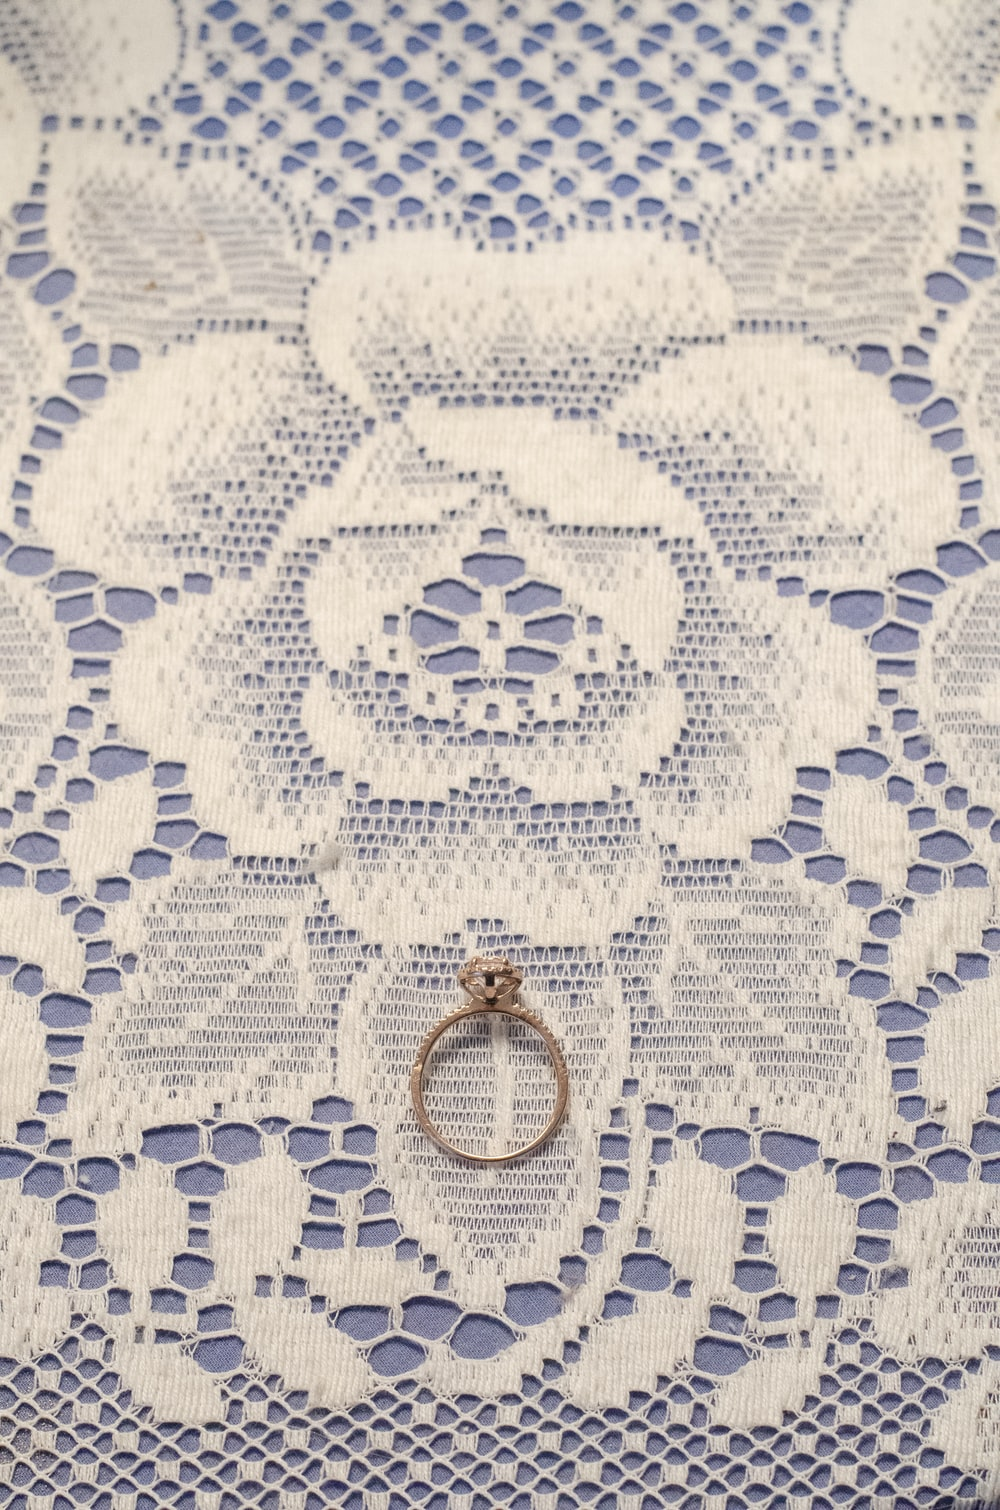 gold ring on white and blue floral textile